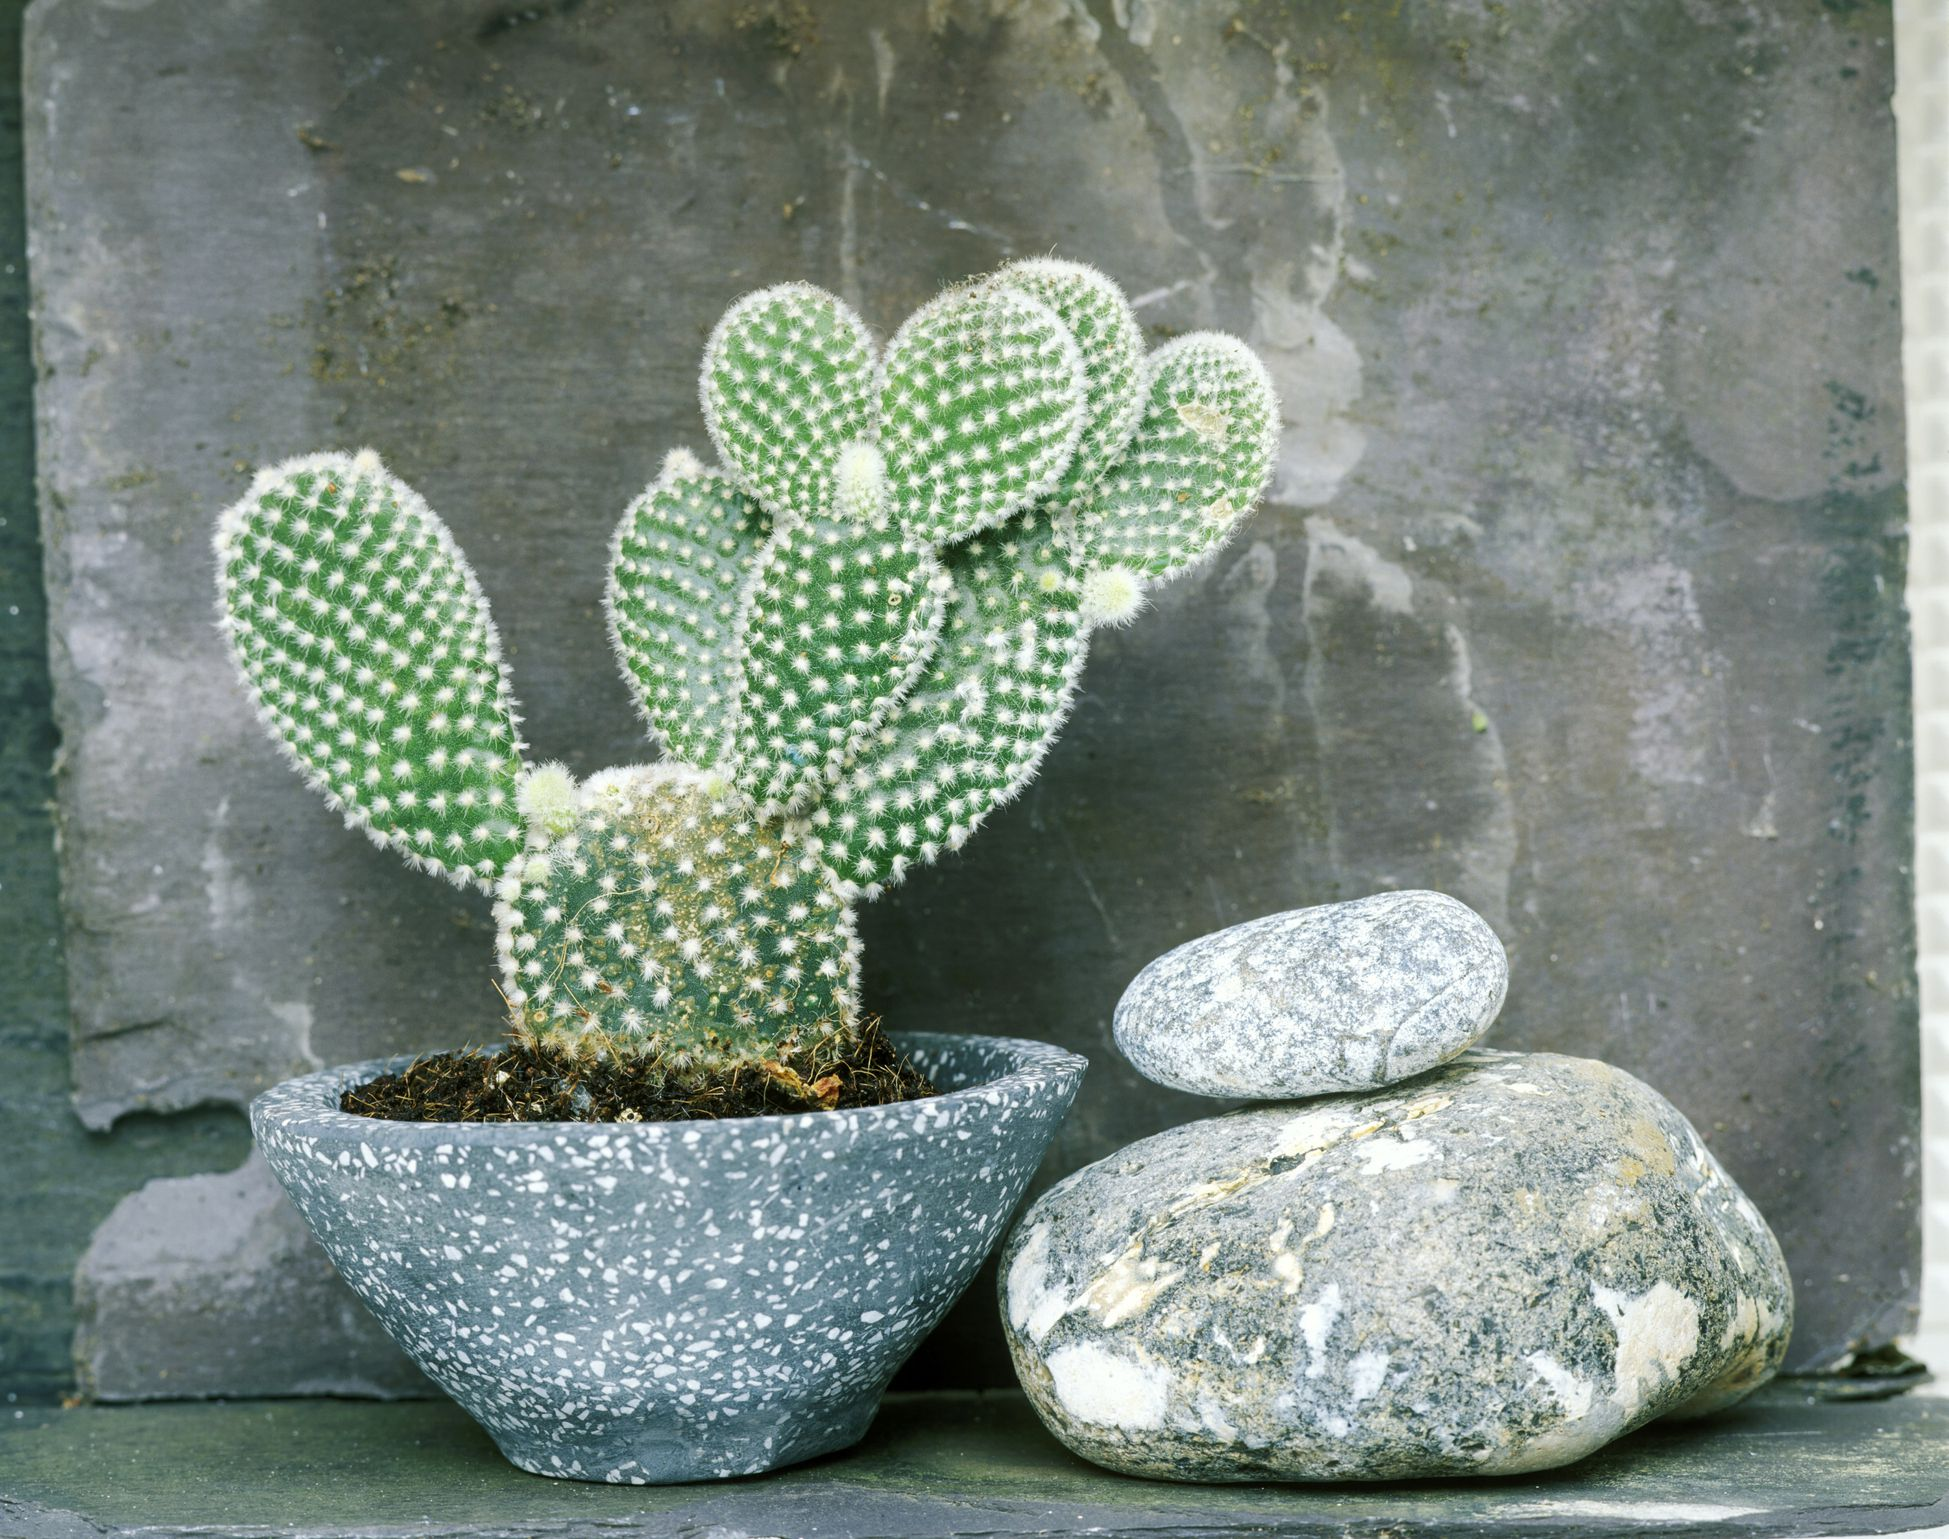 best cactus varieties to grow indoors. Black Bedroom Furniture Sets. Home Design Ideas